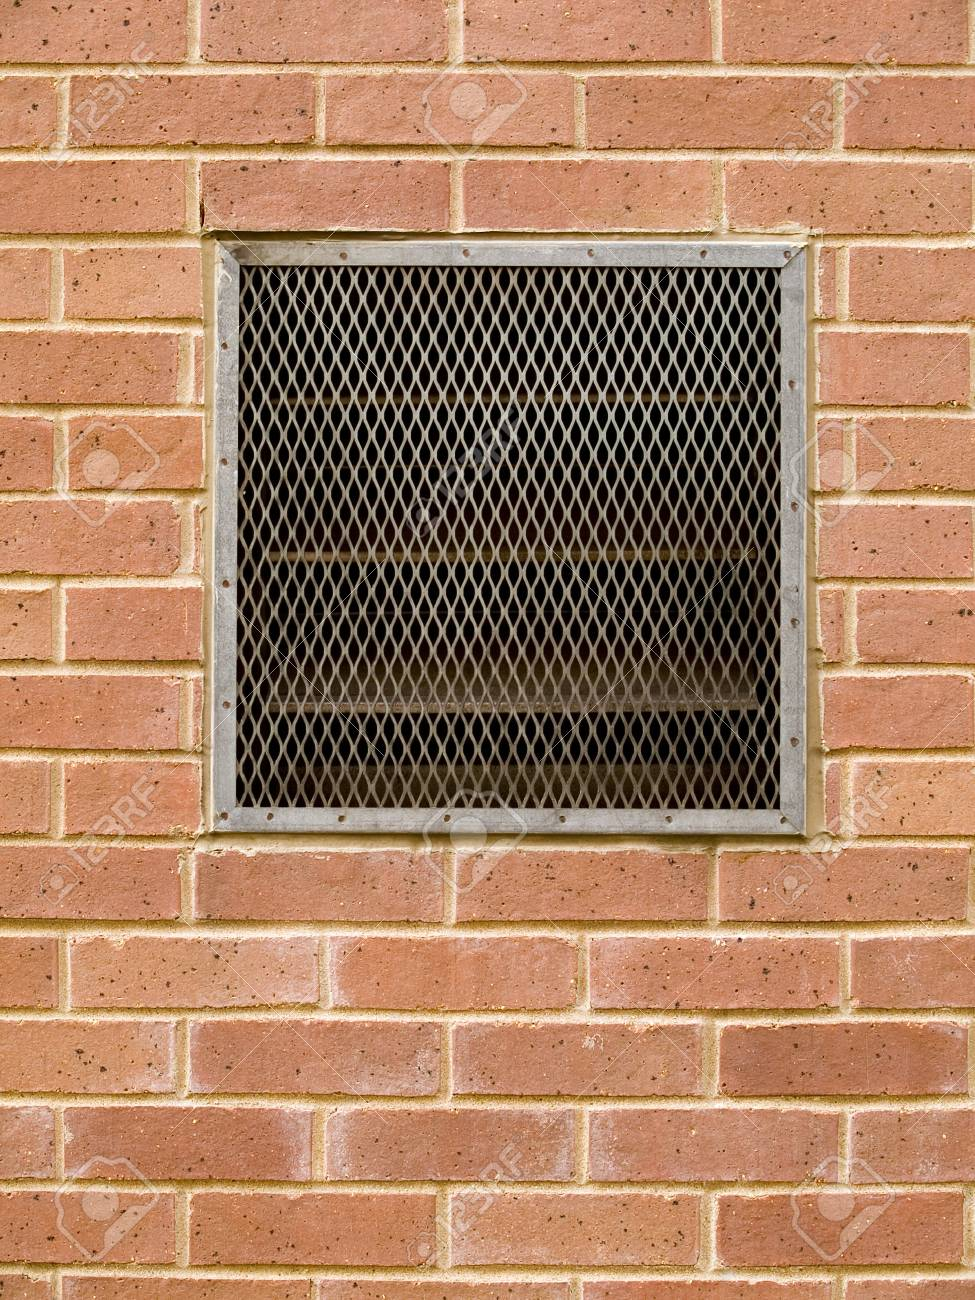 Stock Macro Photo Of A Grate Over An Air Vent Set Into A Brick